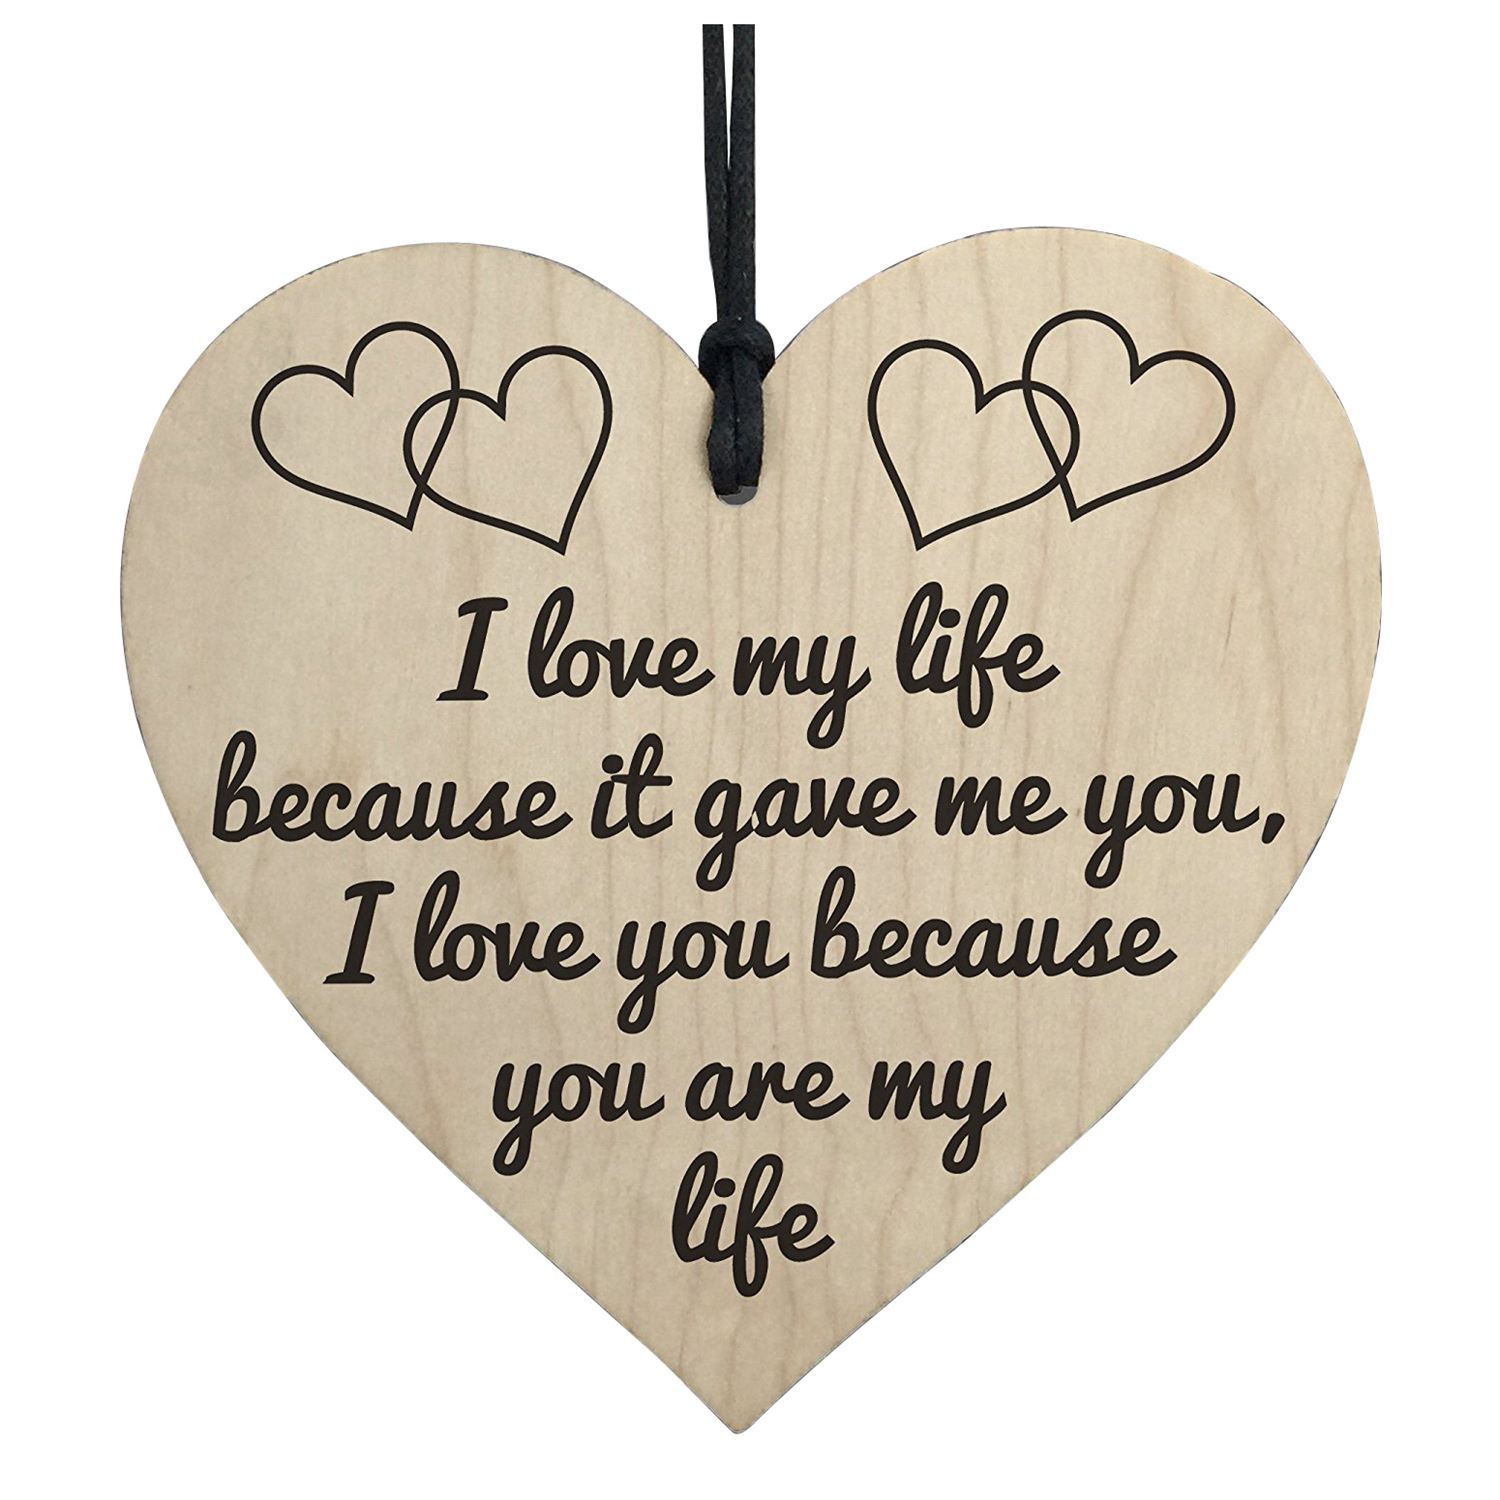 HOT SALE I Love You You Are My Life Wooden Hanging Heart Anniversary Valentines Gift Sign